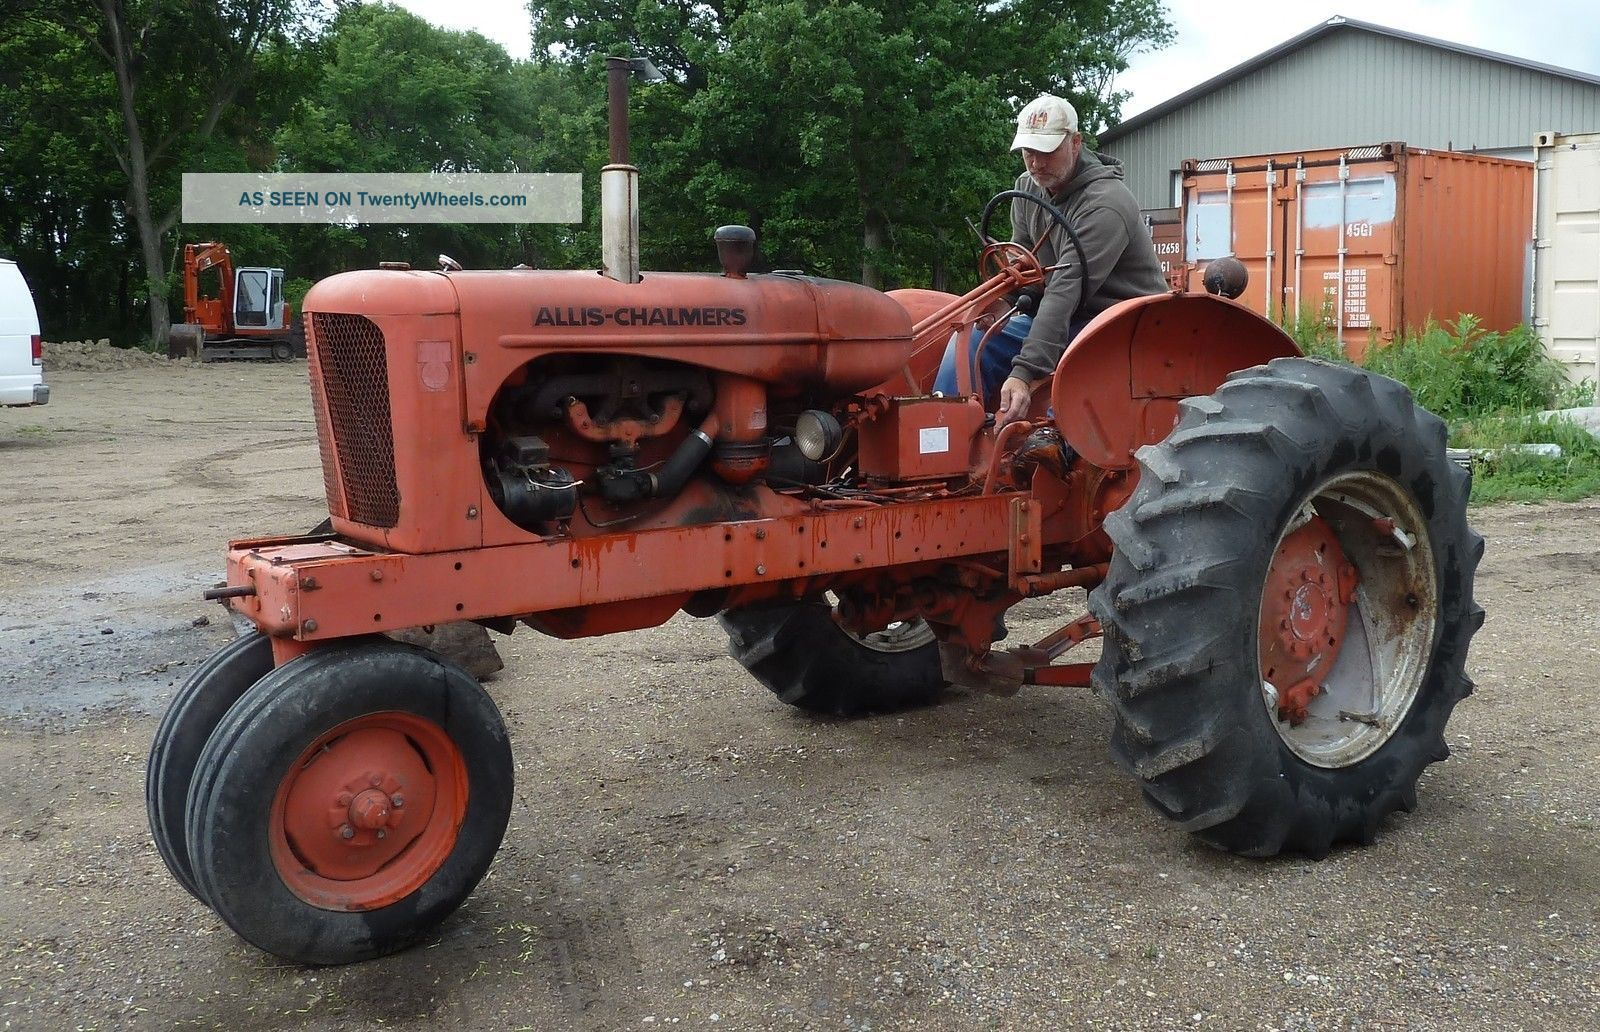 Allis Chalmers Wd45 : Allis chalmers wd